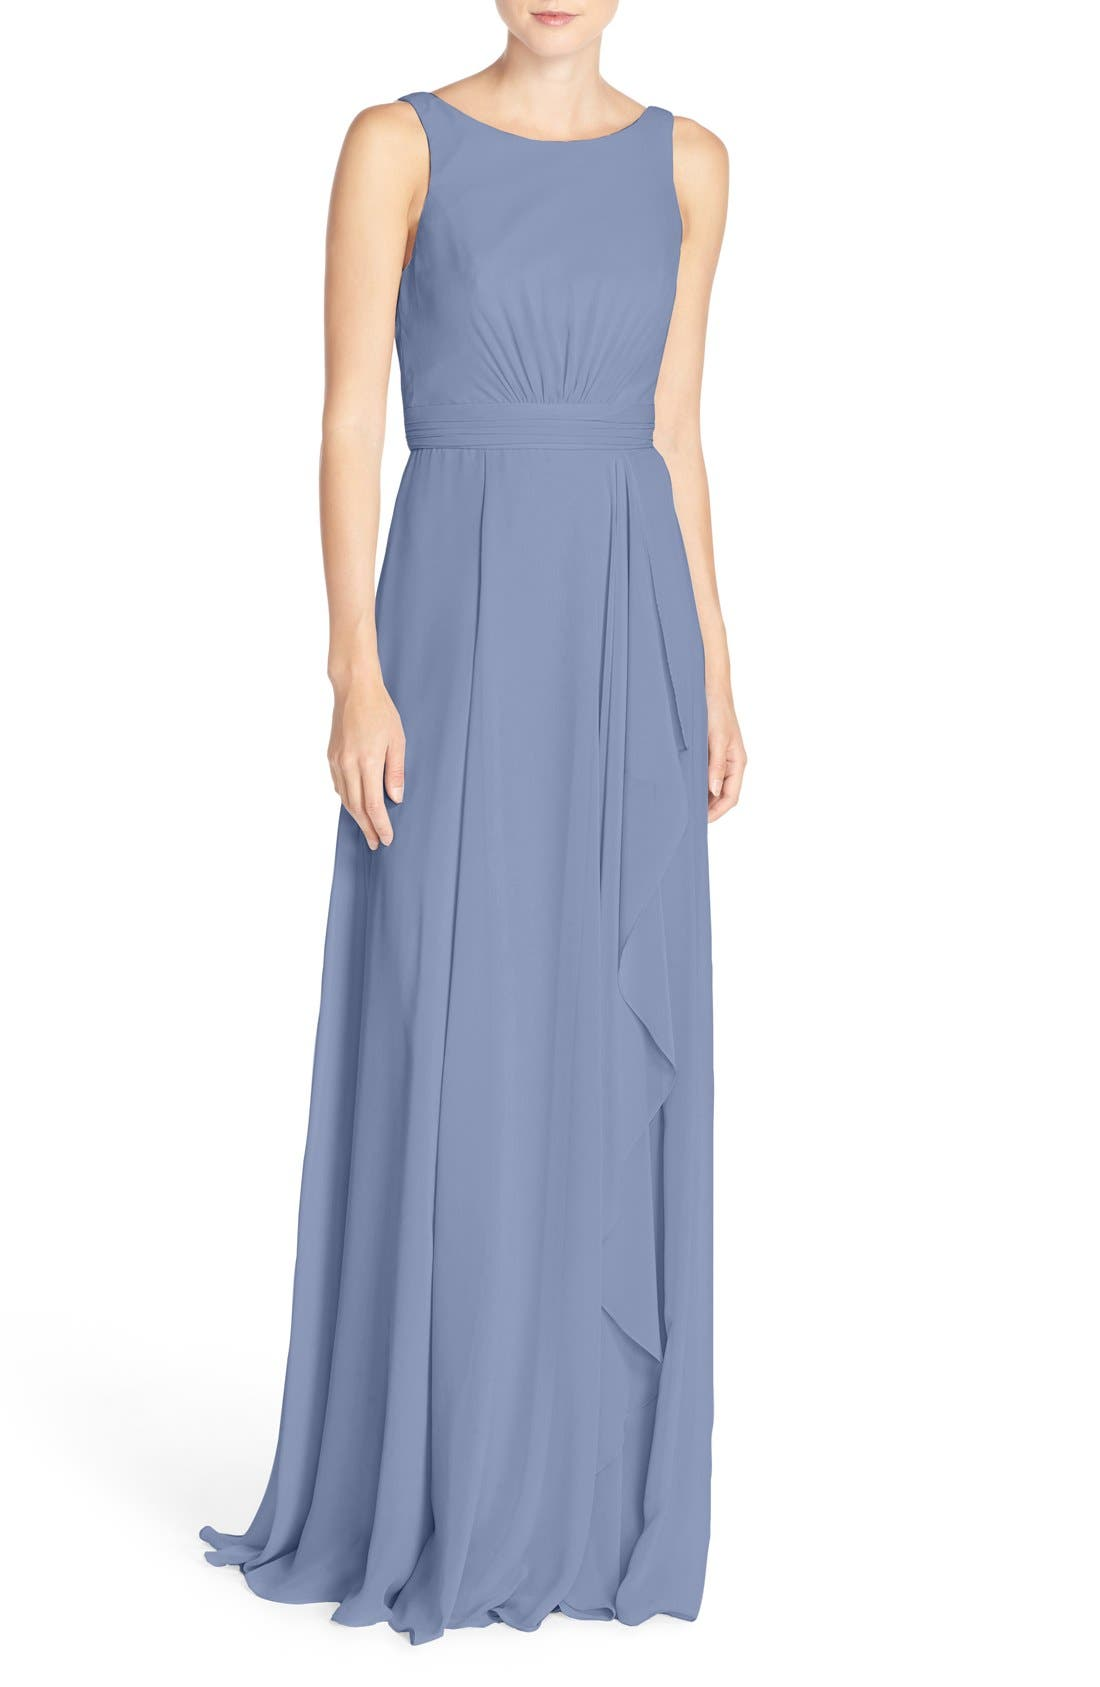 Amsale 'Rory' Sleeveless V-Back Chiffon Gown